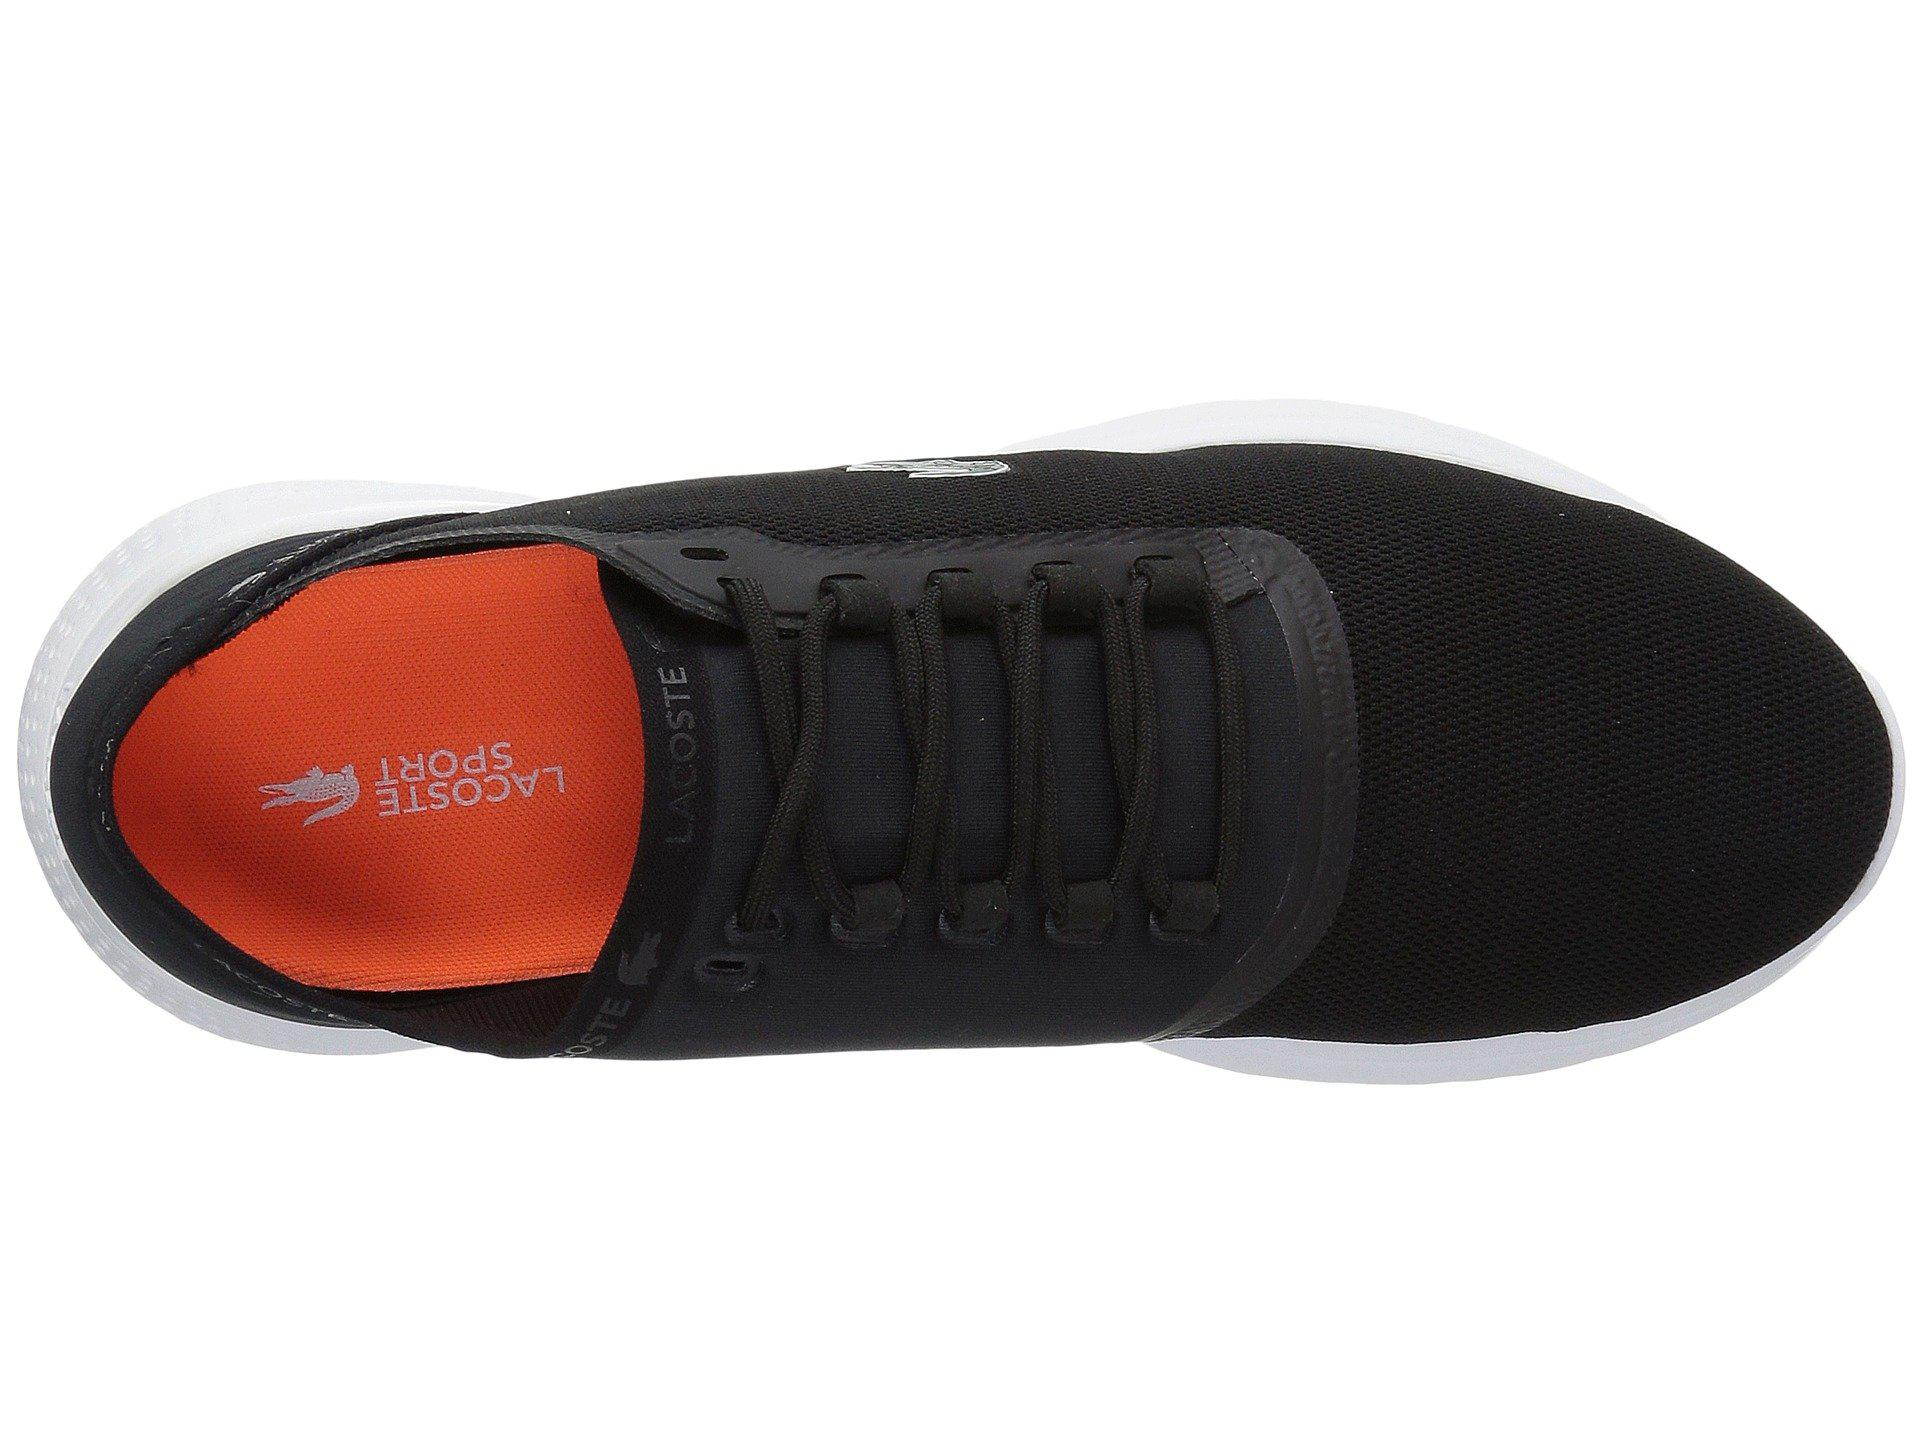 9a67315d55a96 Lacoste - Black Lt Fit 118 4 (dark Grey red) Men s Shoes for. View  fullscreen